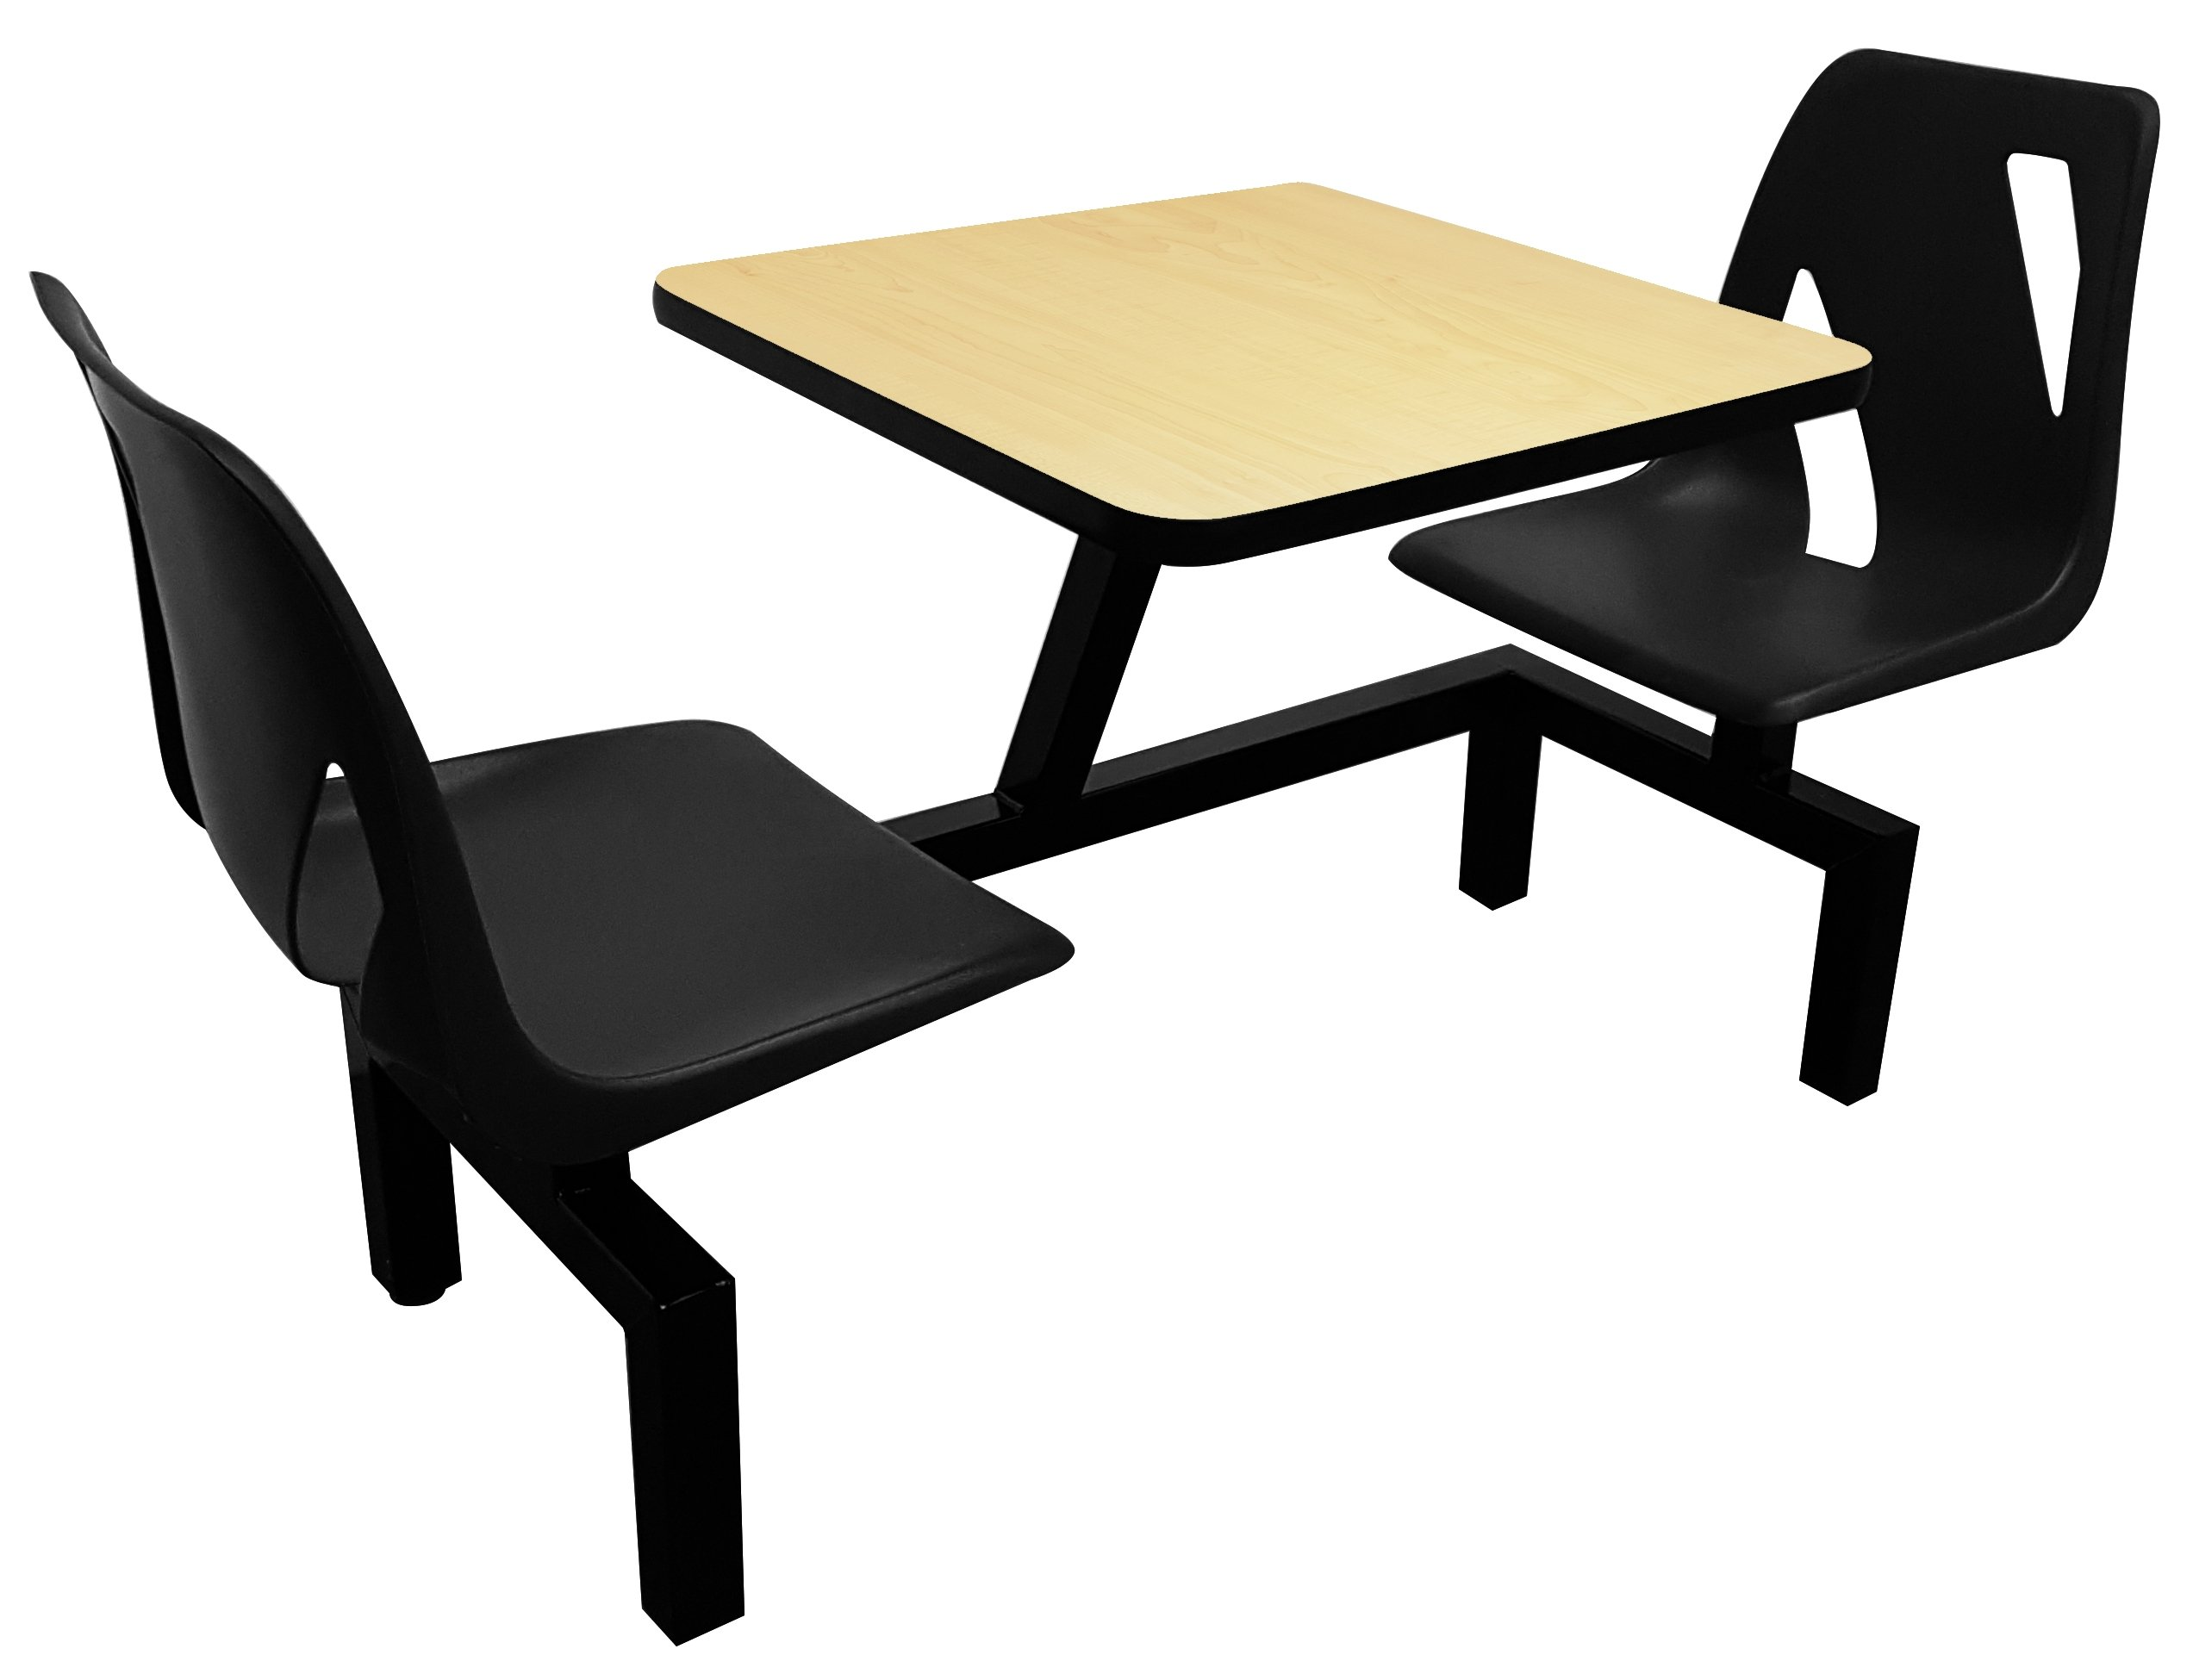 Rodo Industries DS2W-BK-FM DS2W,BK,FM DS Series Public Cluster Modular Seating, Two Seat Wall Units, Black Seat, Fusion Maple Tabletop, 60'' x 24'' x 29''